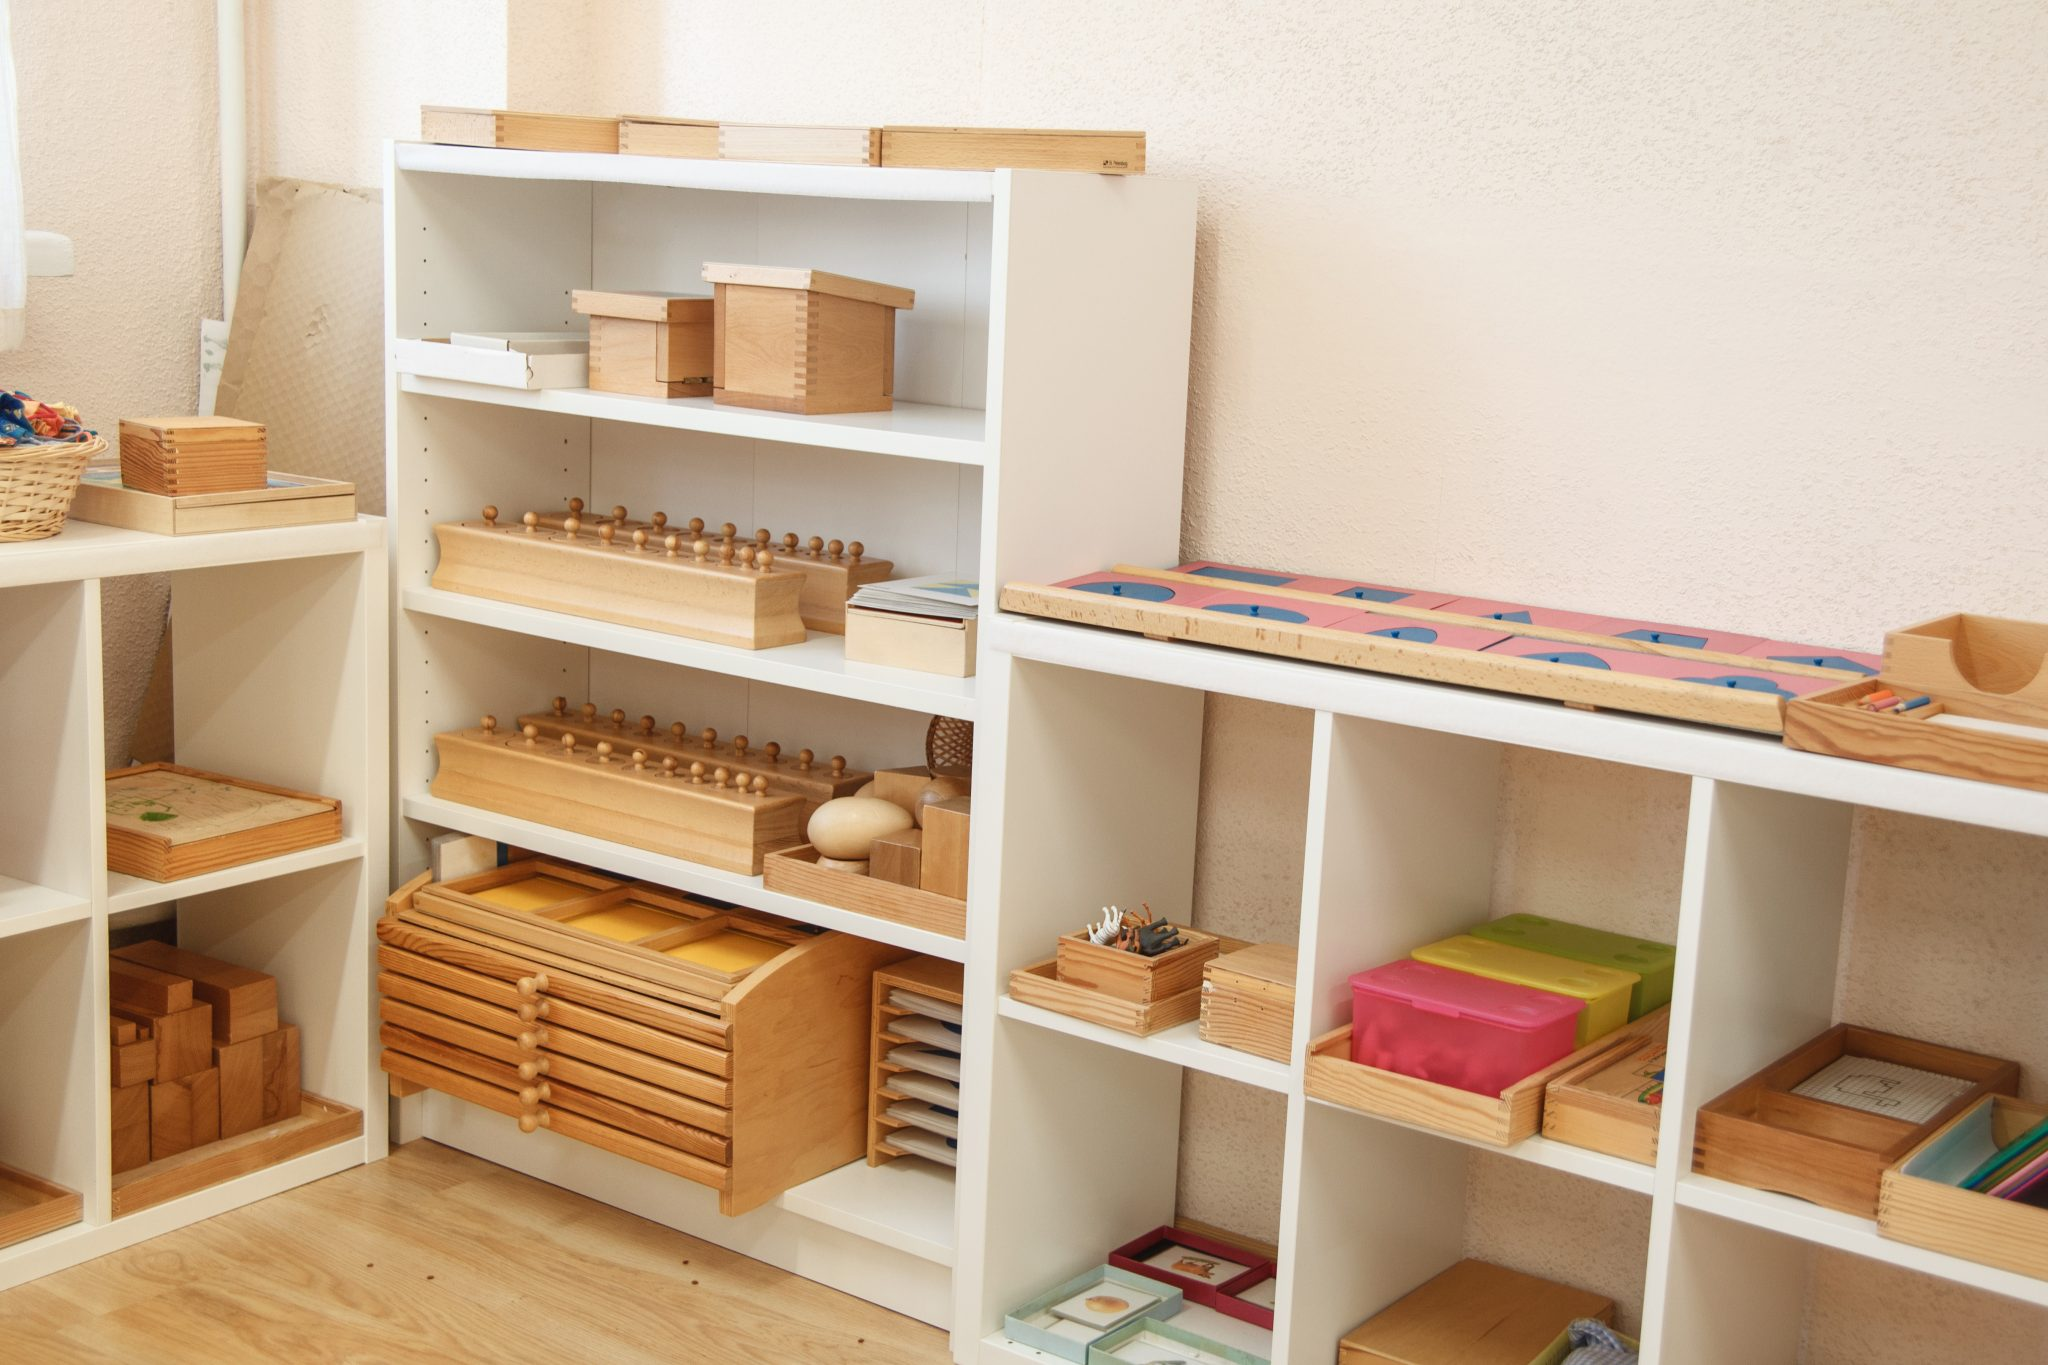 Montessori shelf work